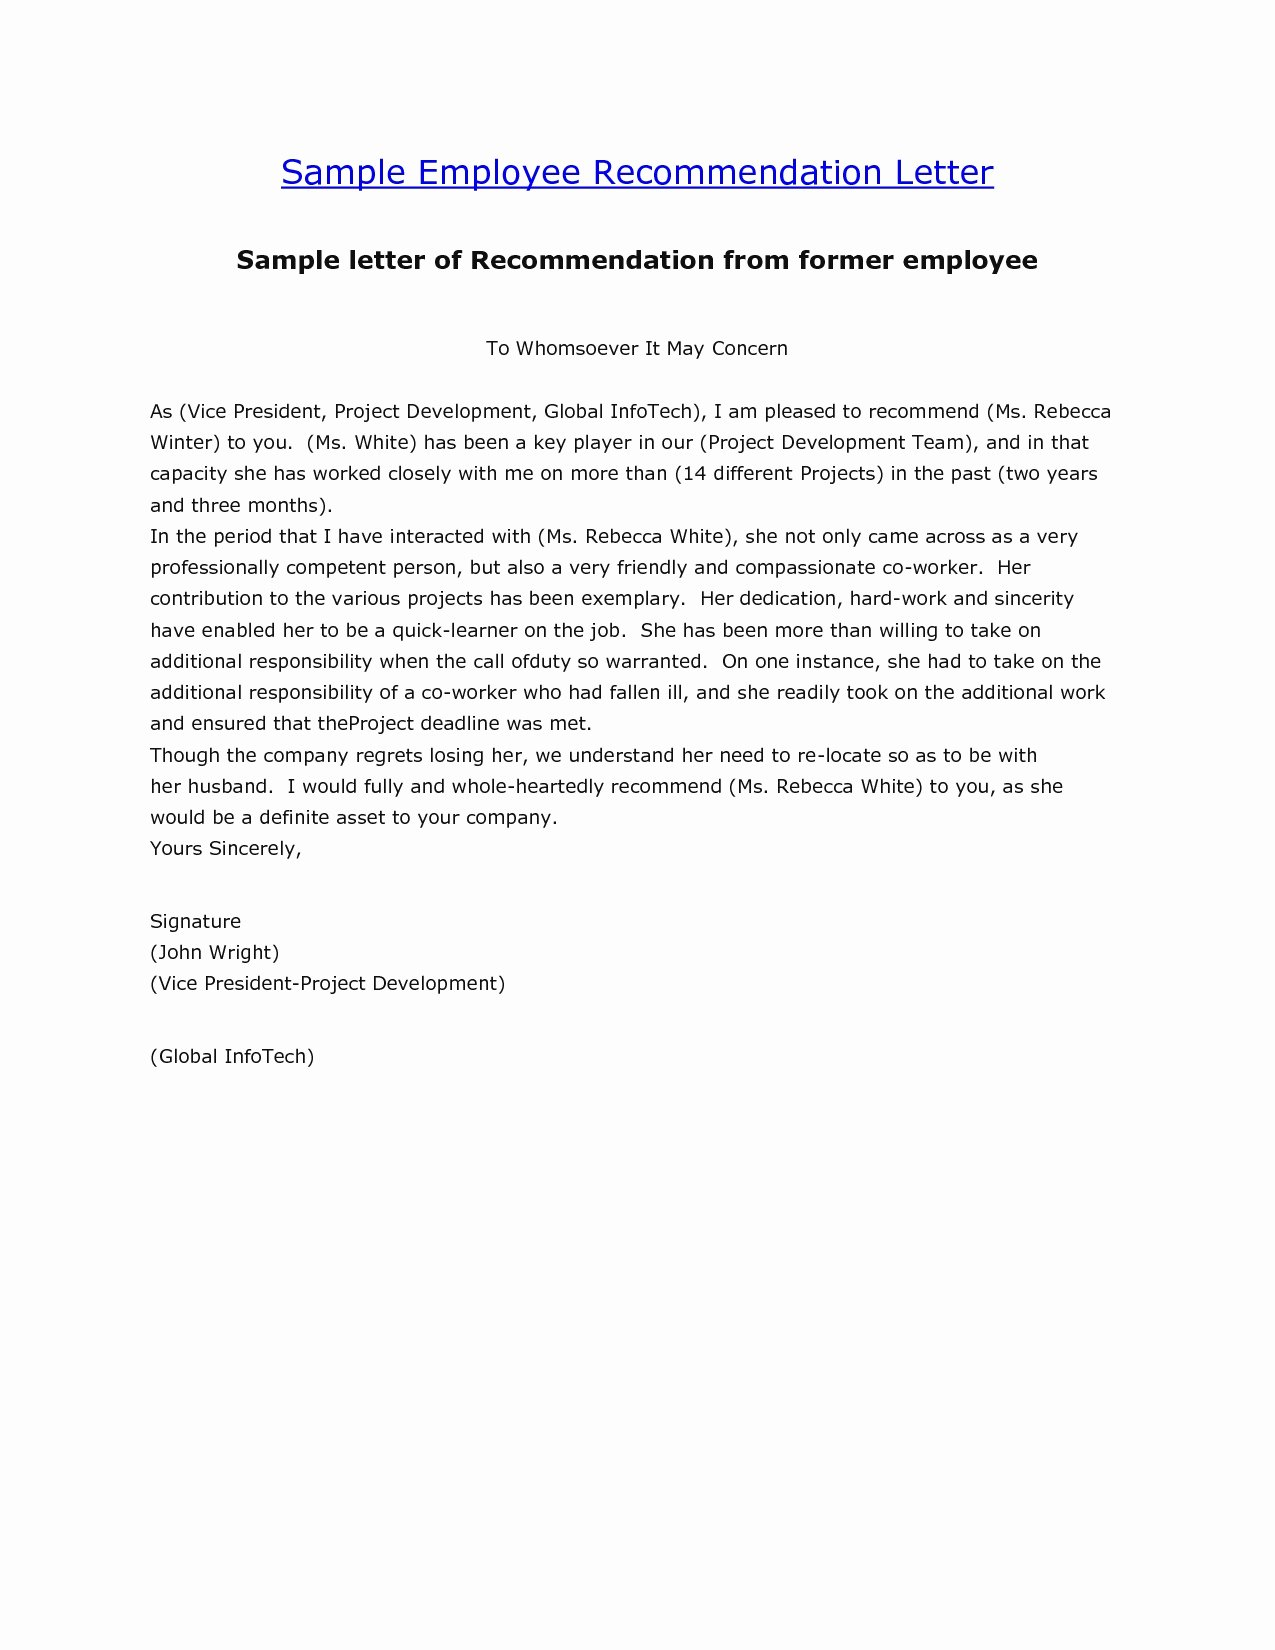 Free Letter Of Recommendation Template Beautiful [free] Letter Of Re Mendation Examples Samples